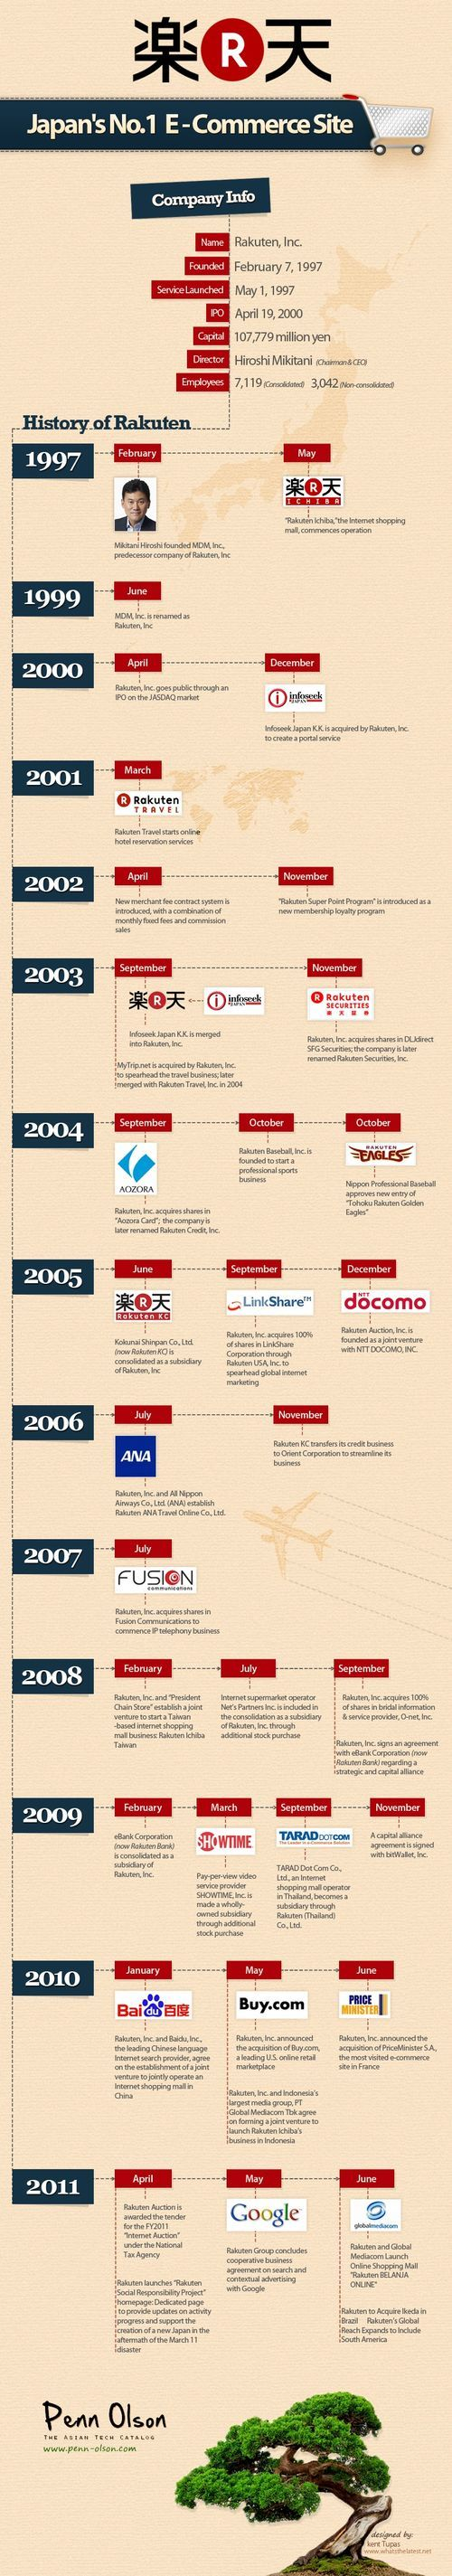 Japan's Number 1 E-Commerce Site: The history of Rakuten.